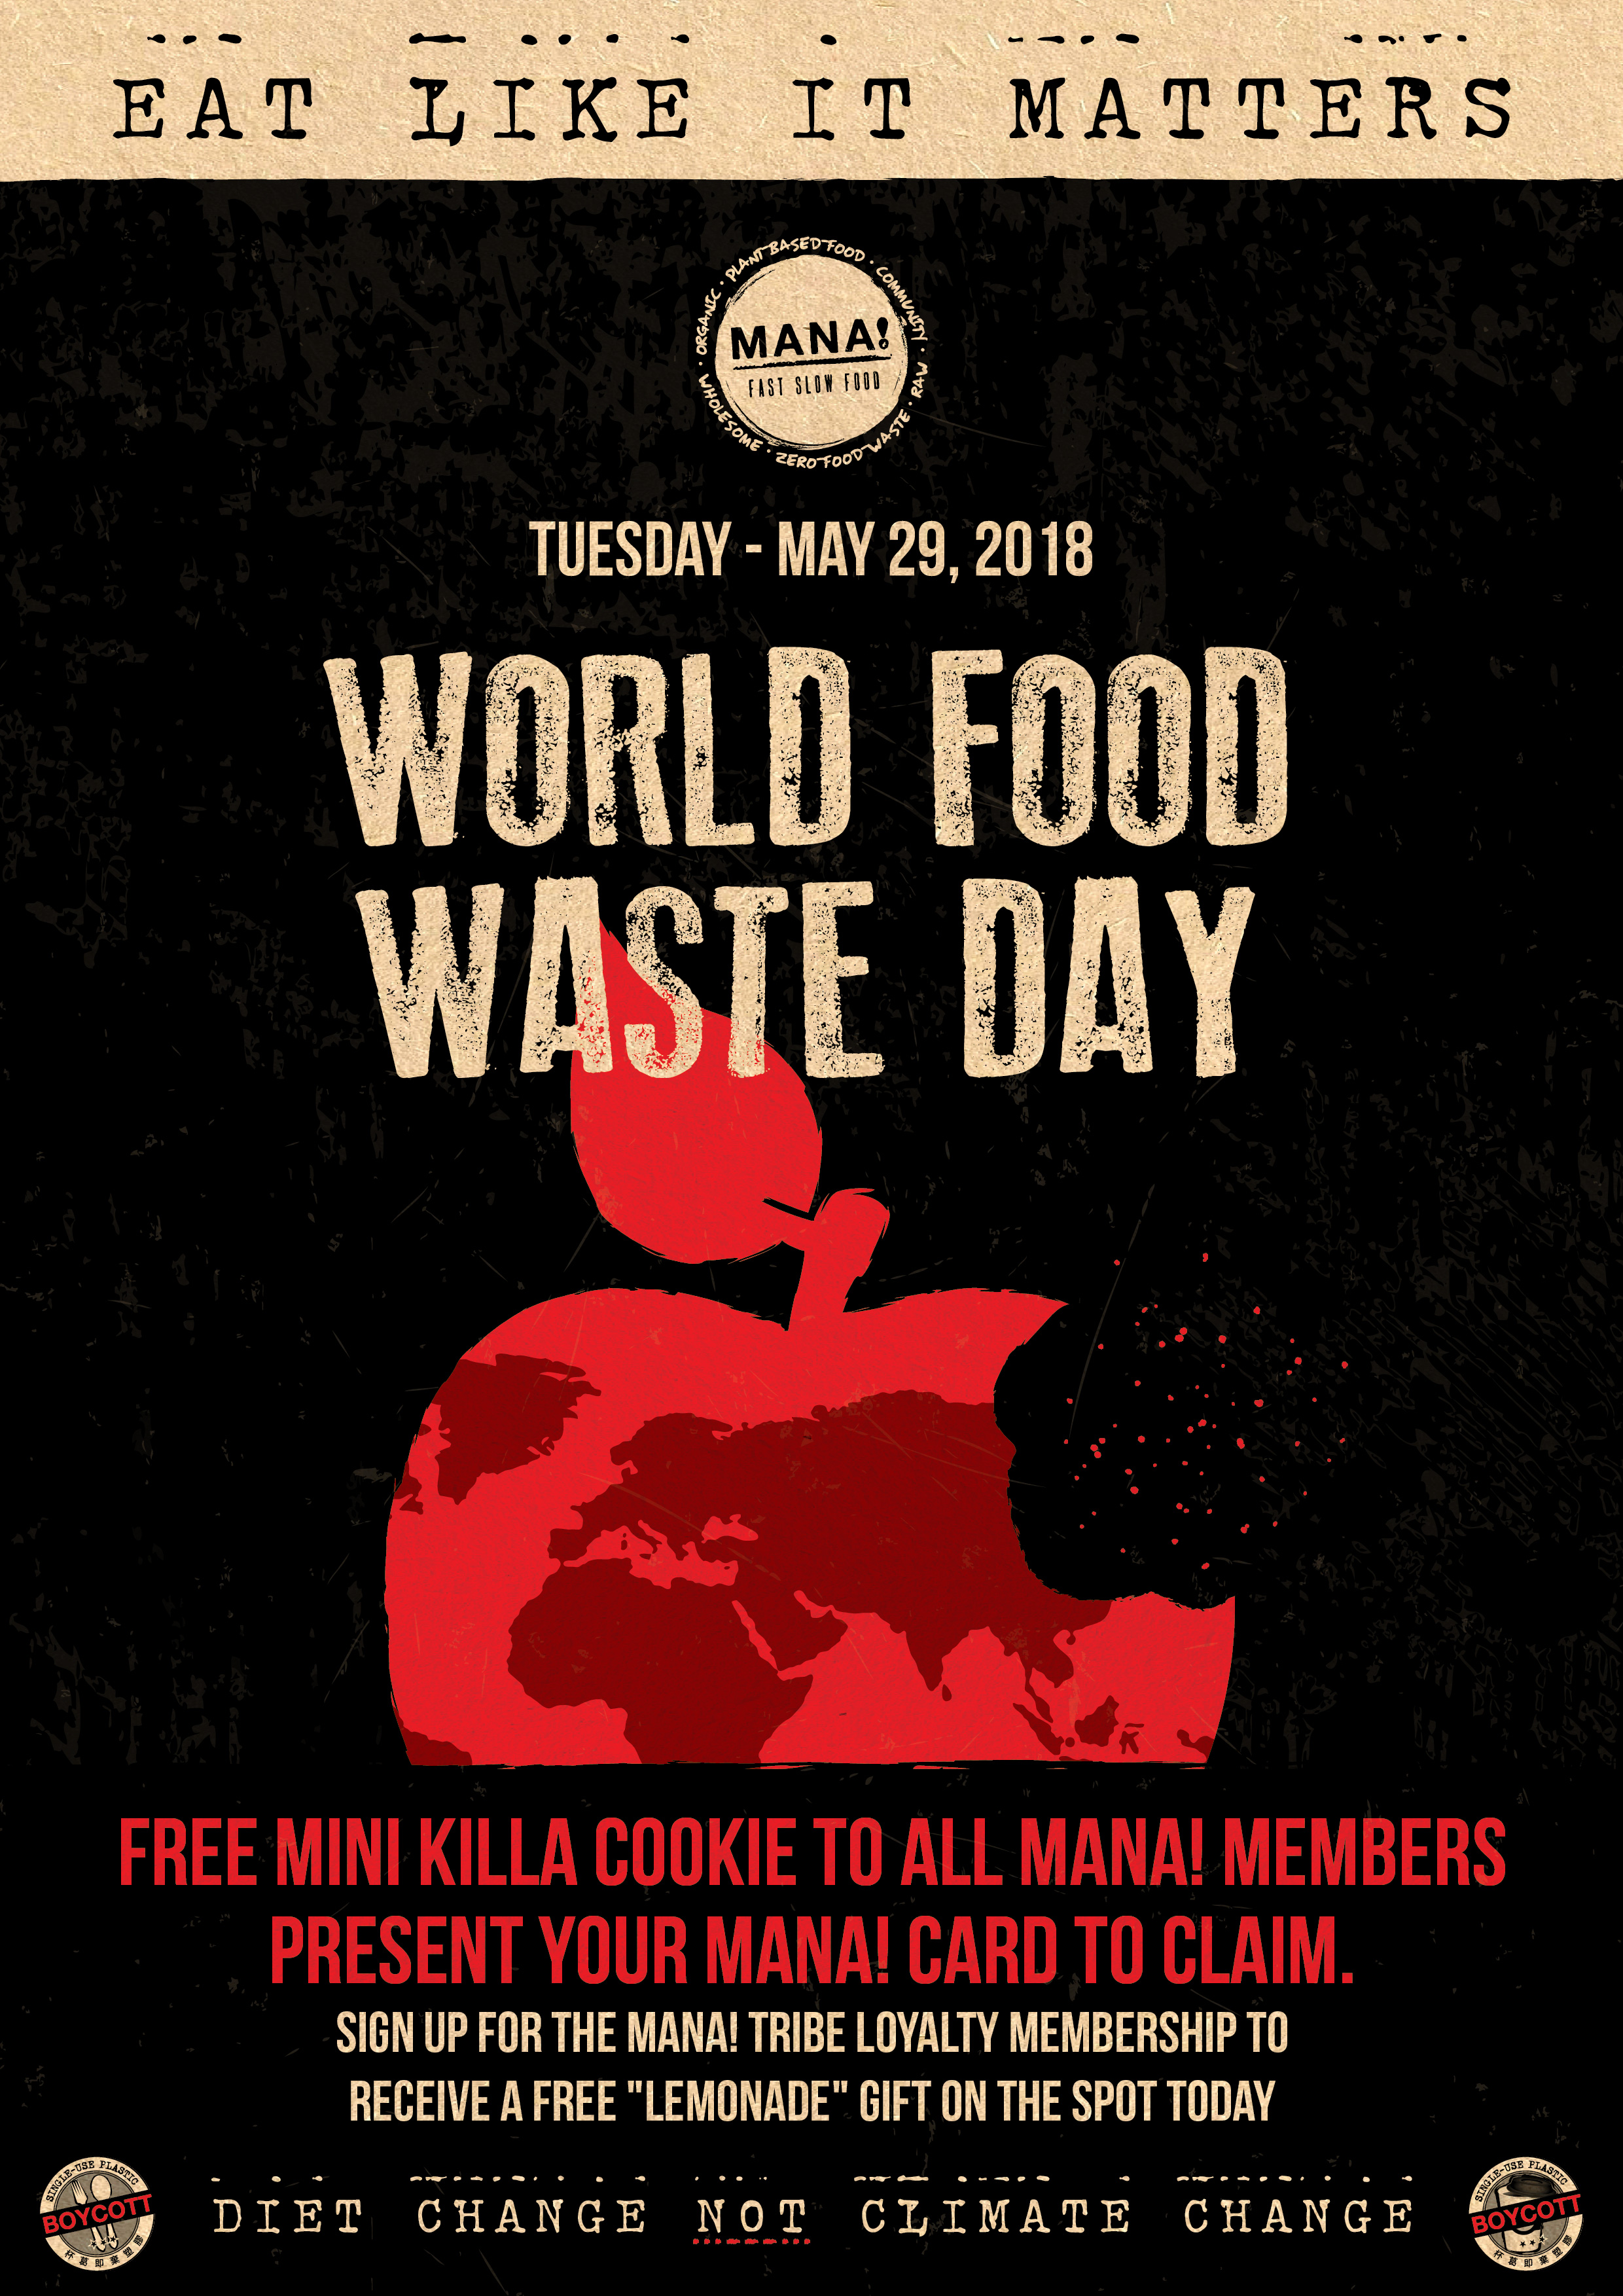 MANA! Community Days (World Food Waste Day) - Poster 02A-01.jpg